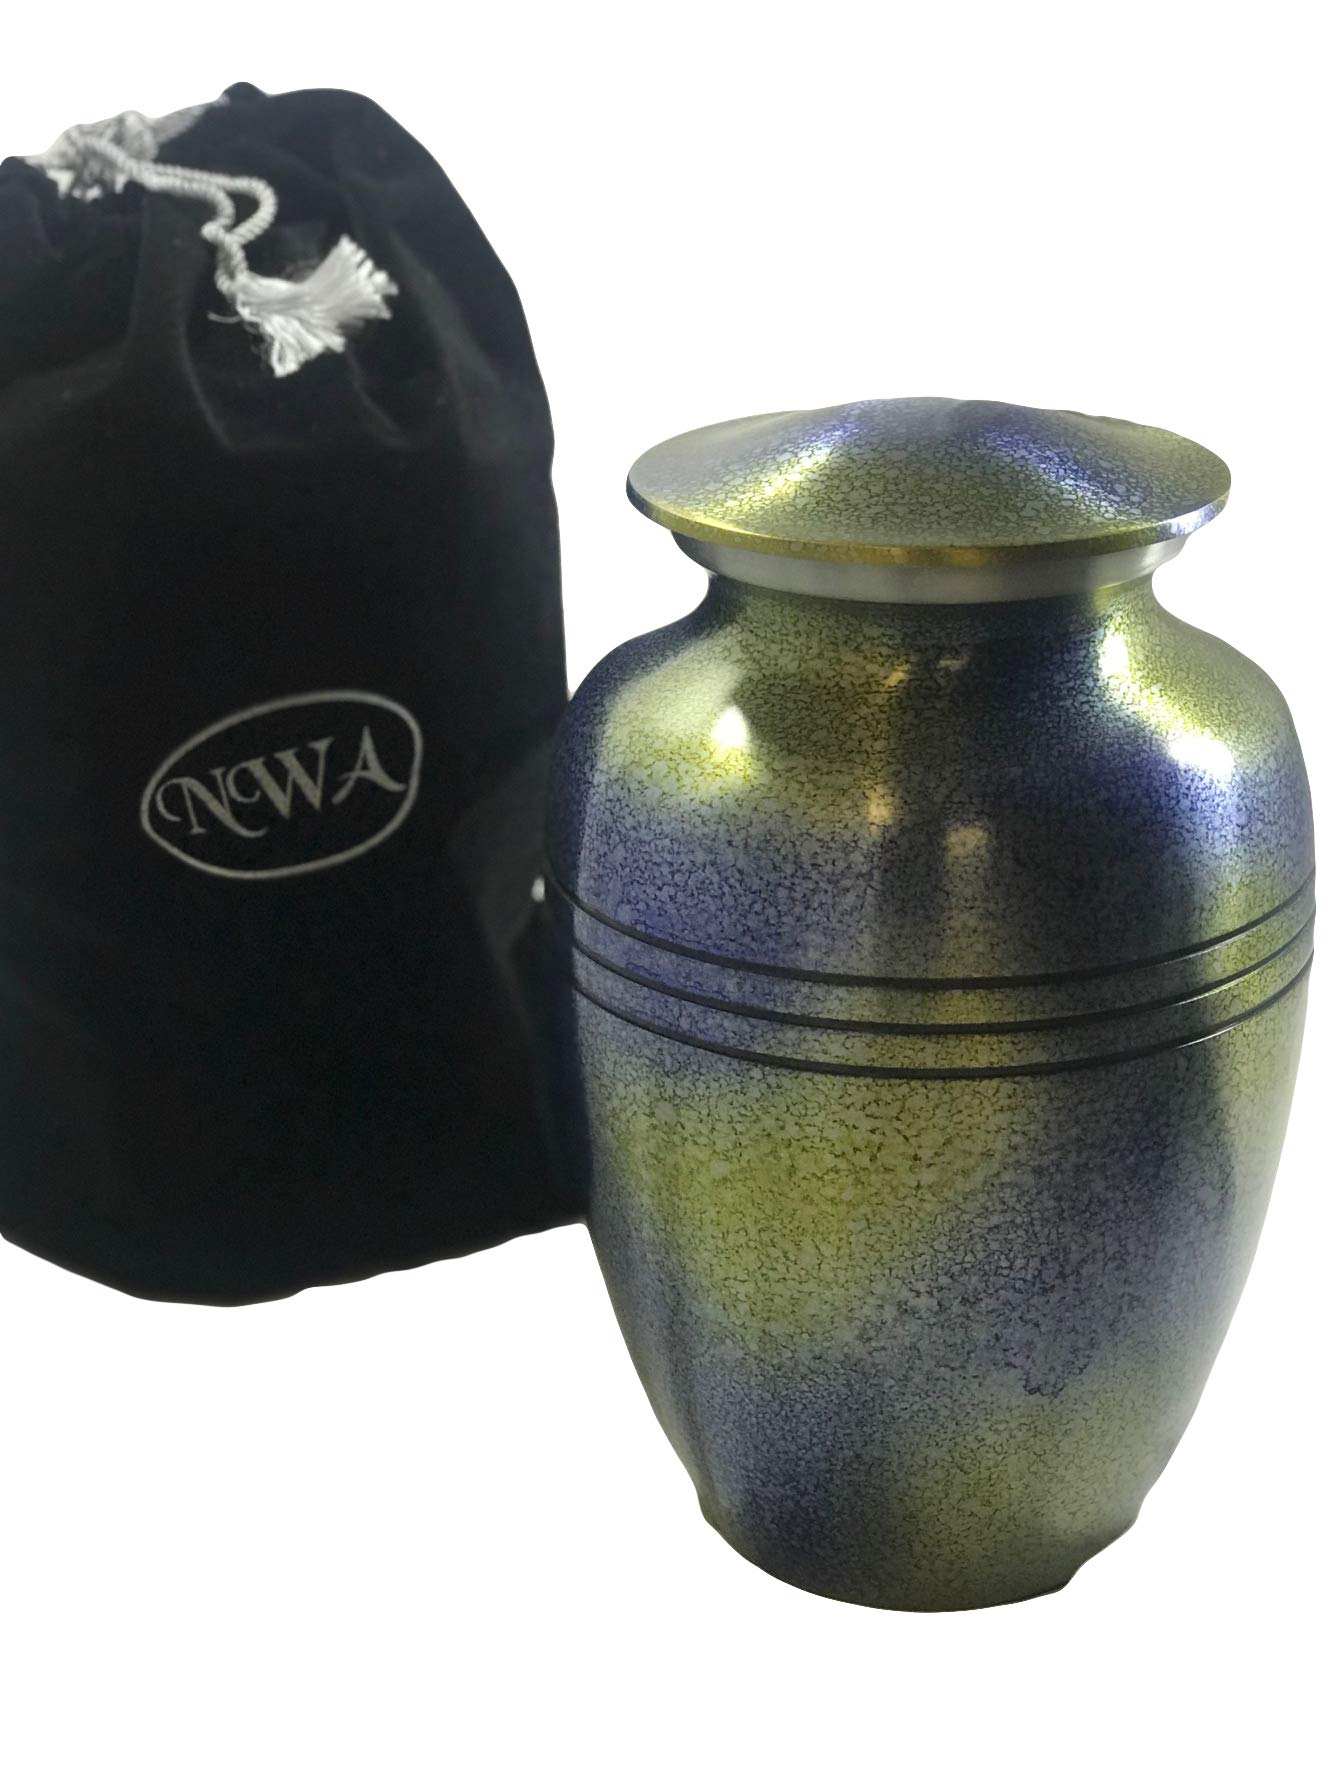 Extra Large Cremation Urn, Funeral Urns, Human Companion Urn With Bag by NWA